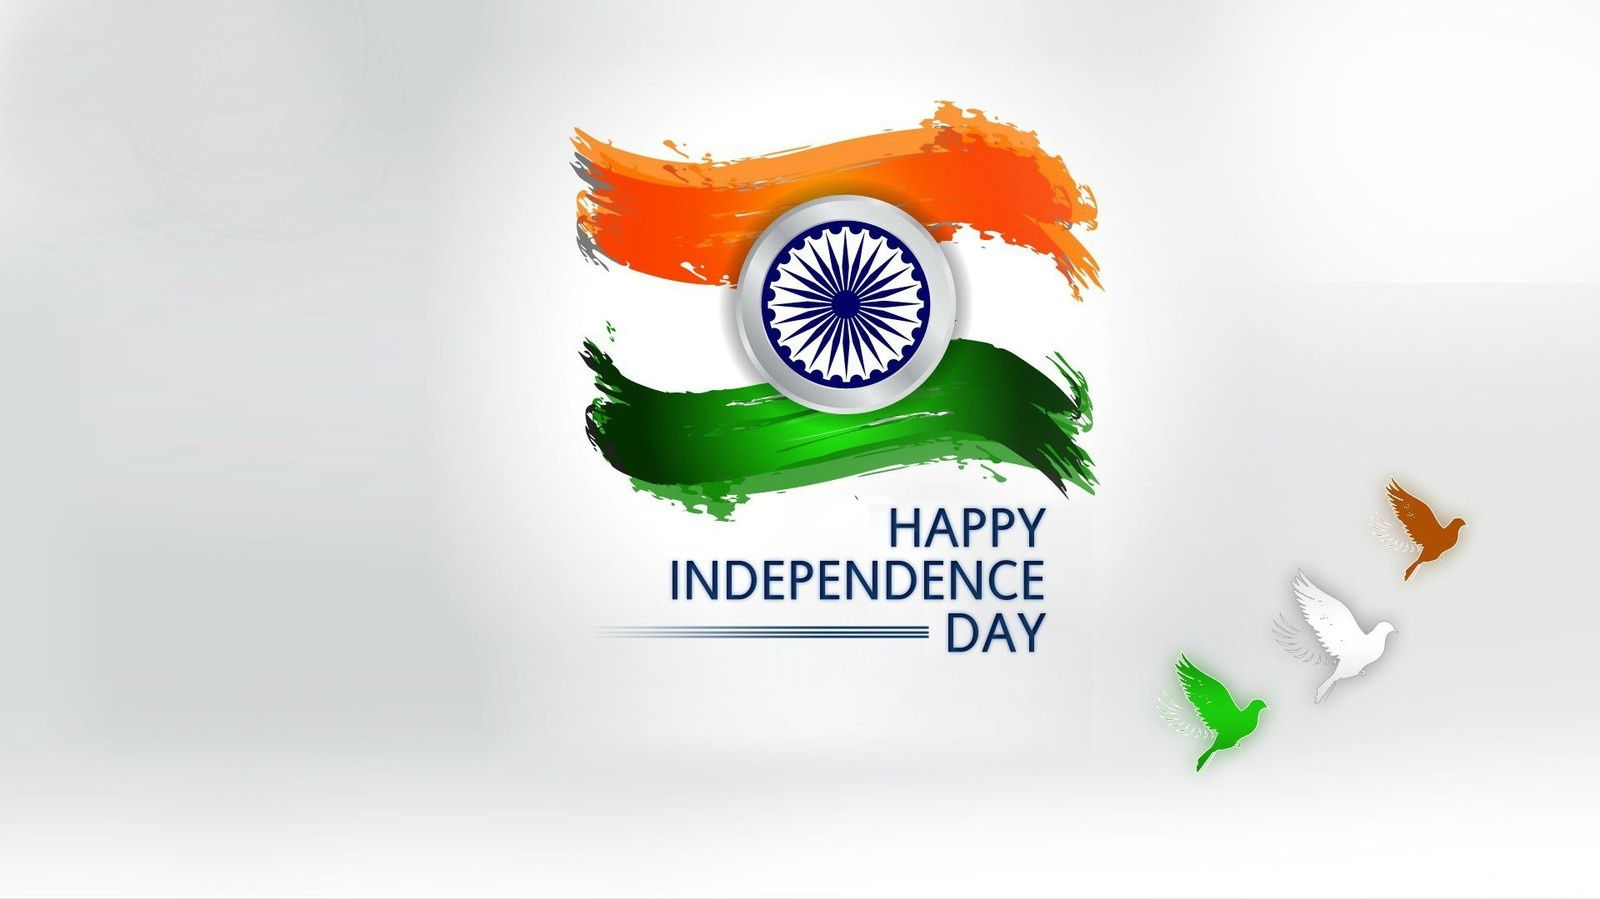 HAPPY INDEPENDENCE DAY INDIA !!!